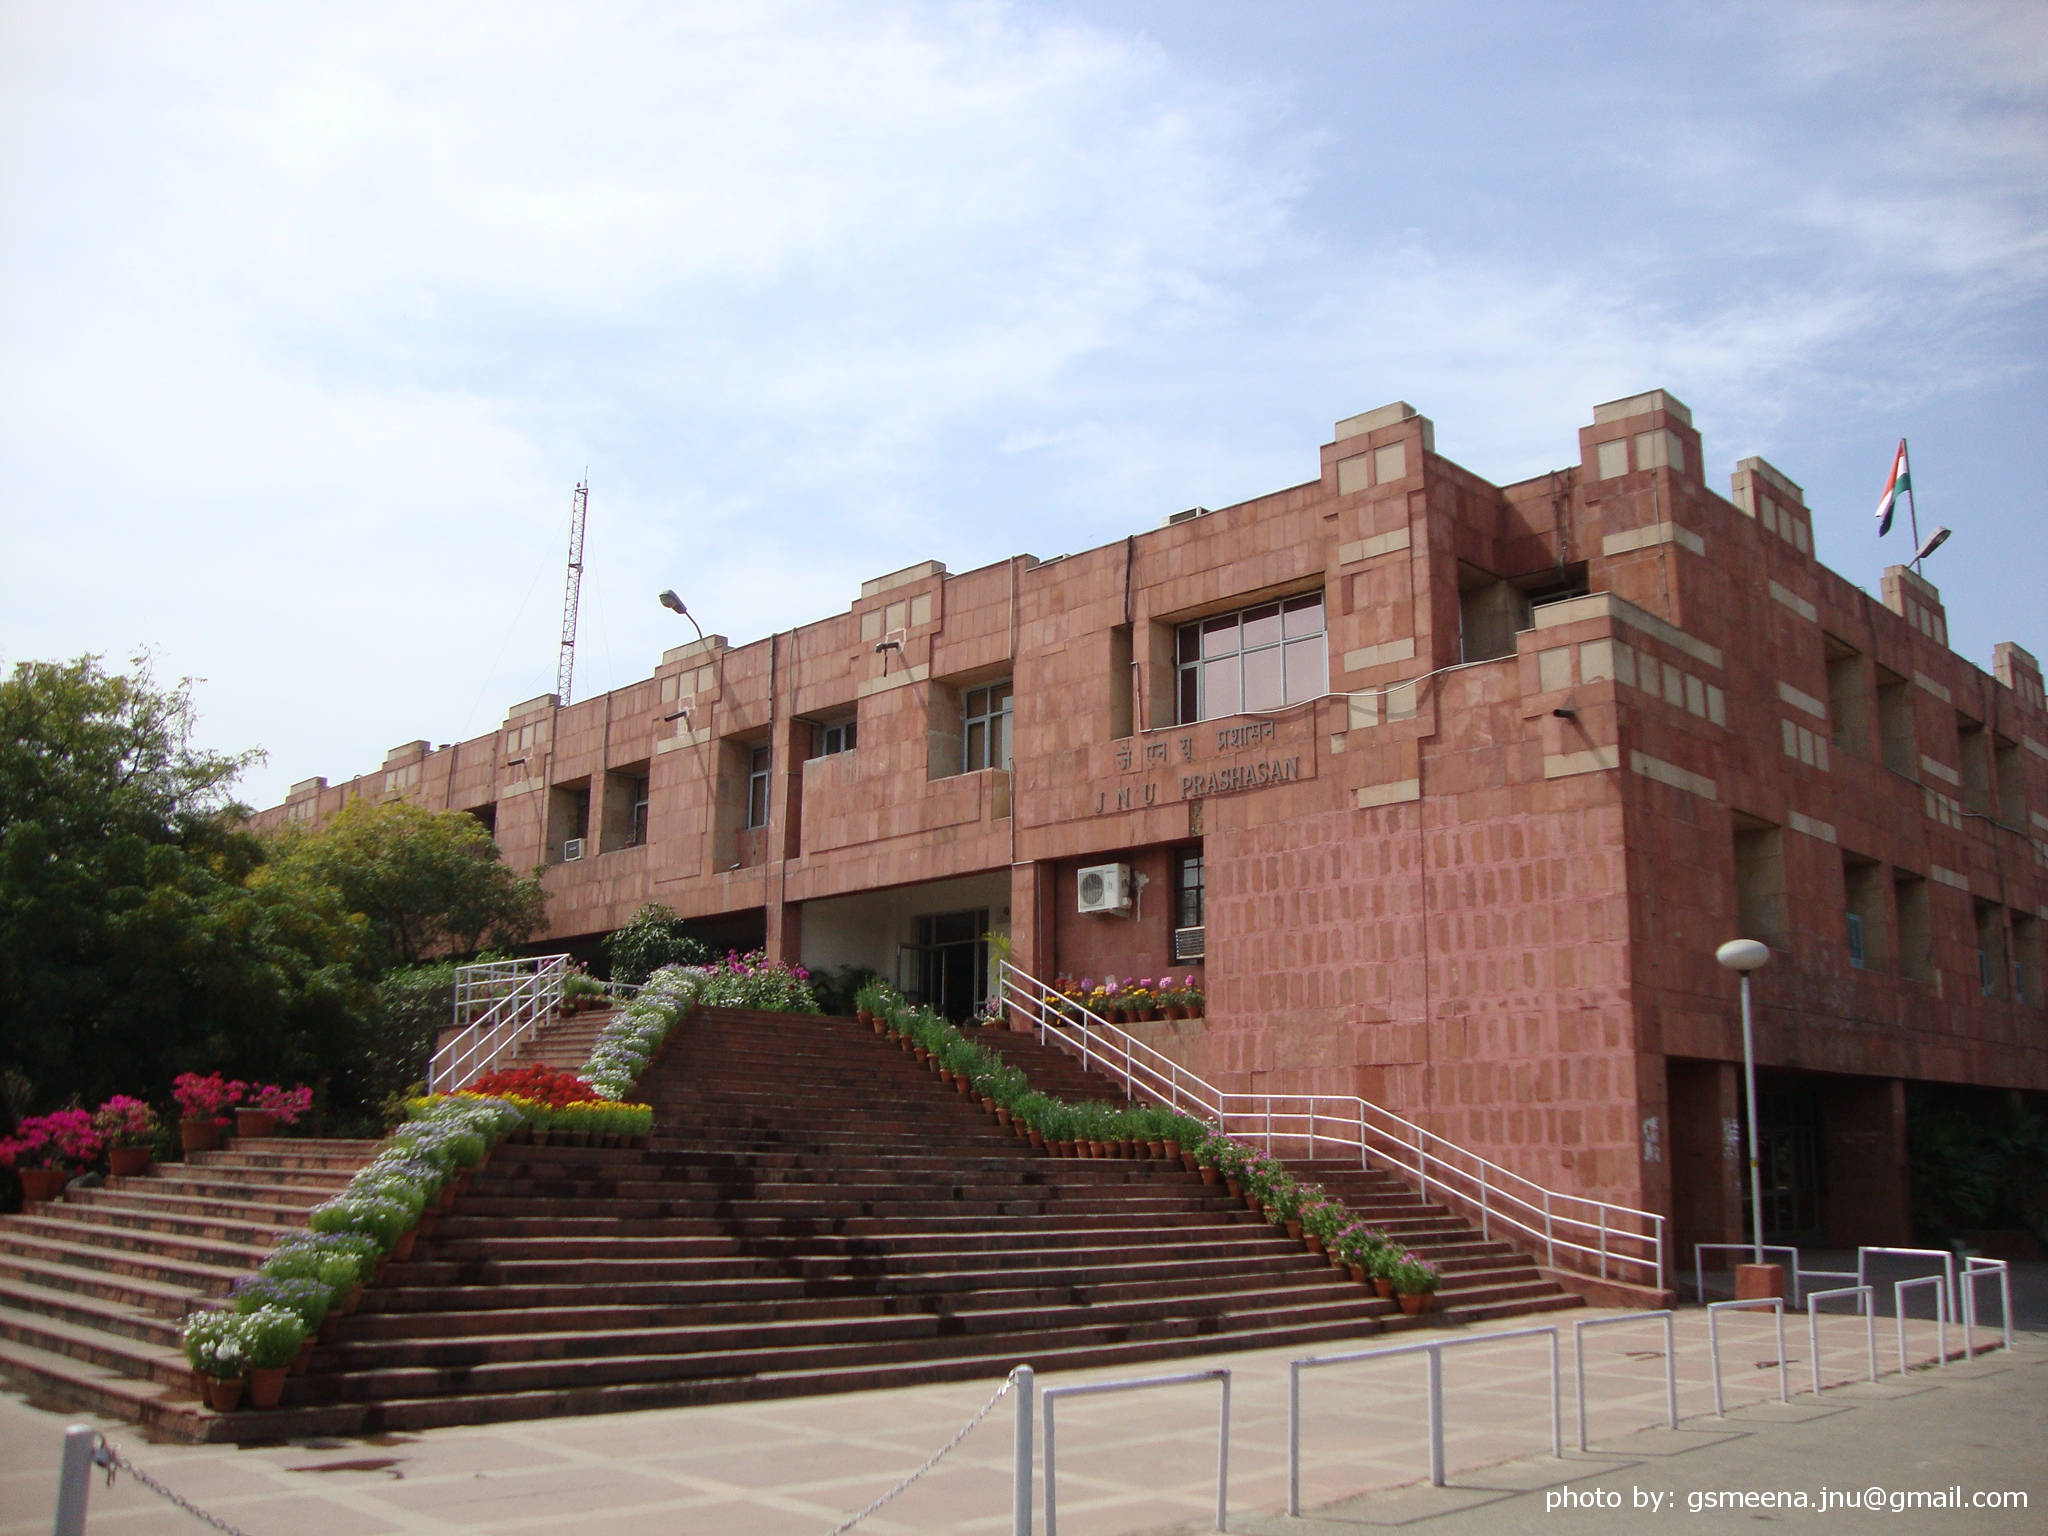 JNU administrative building. Source: gsmeena.jnu@gmail.com